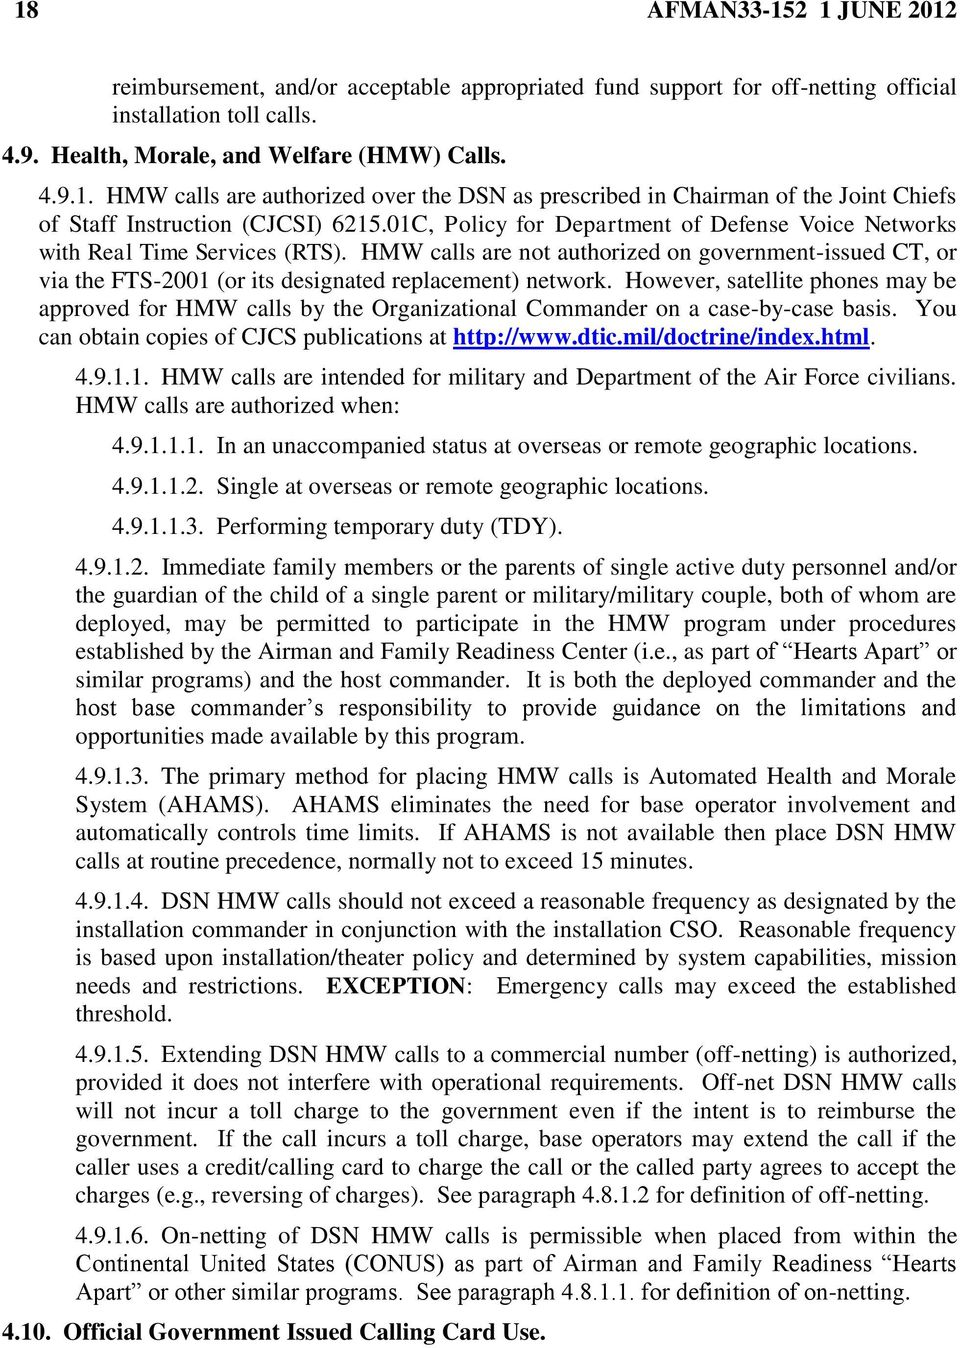 However, satellite phones may be approved for HMW calls by the Organizational Commander on a case-by-case basis. You can obtain copies of CJCS publications at http://www.dtic.mil/doctrine/index.html.